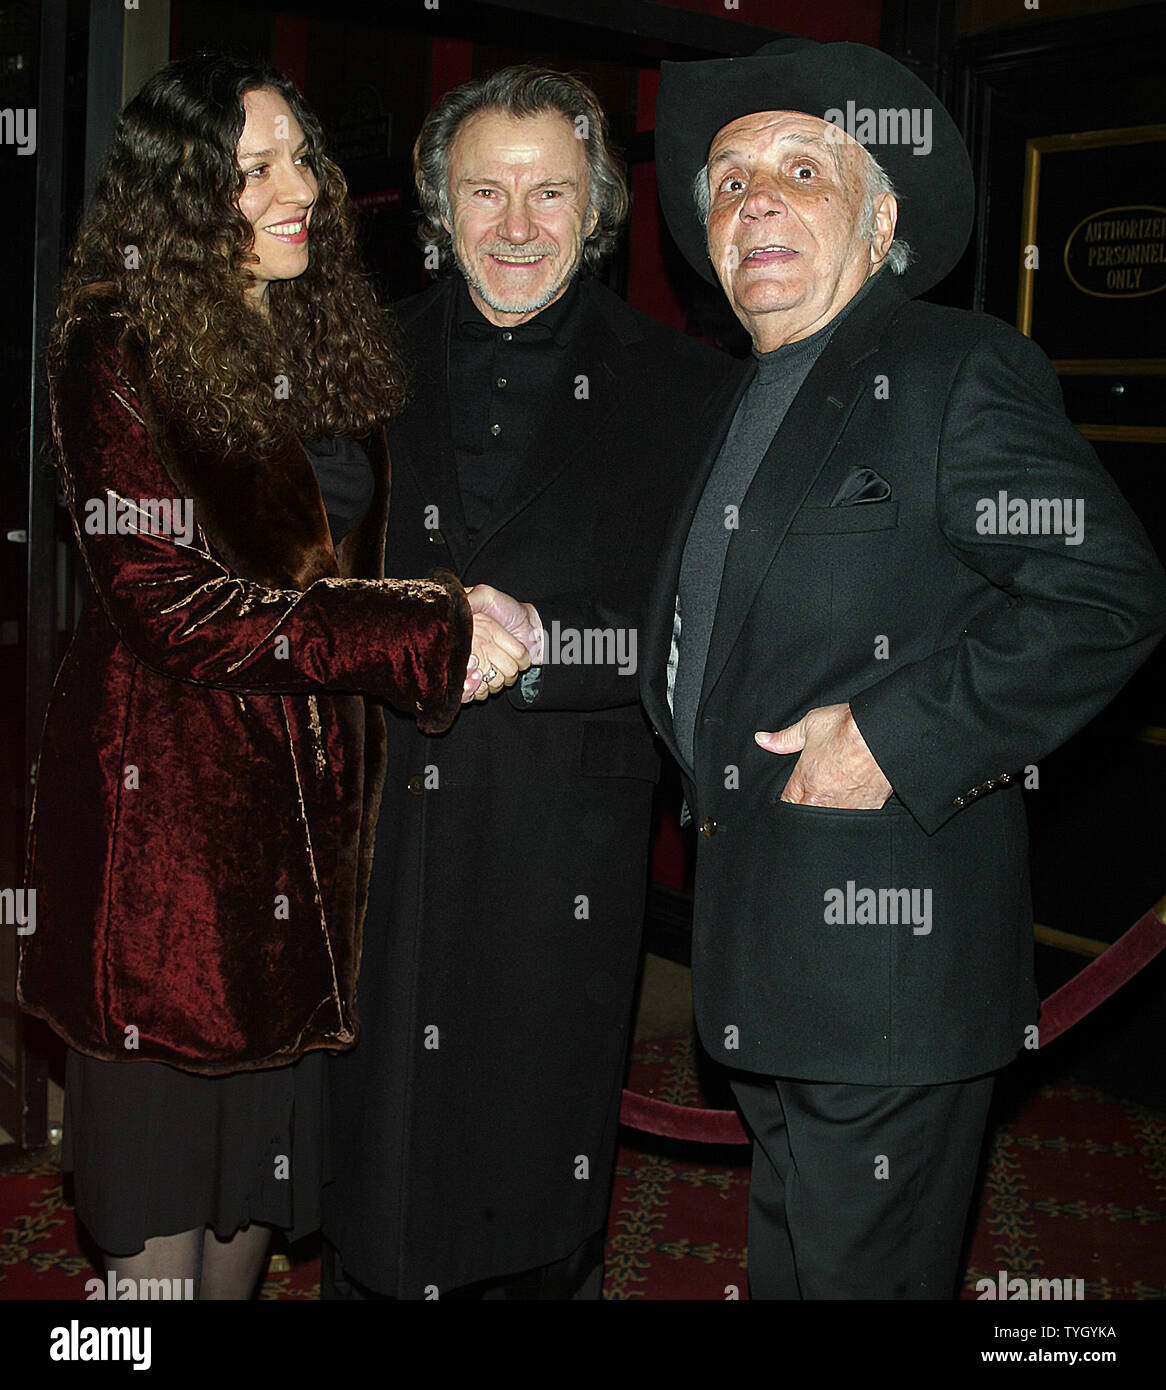 Harvey Keitel (left) and wife and Jake LaMotta arrive for a